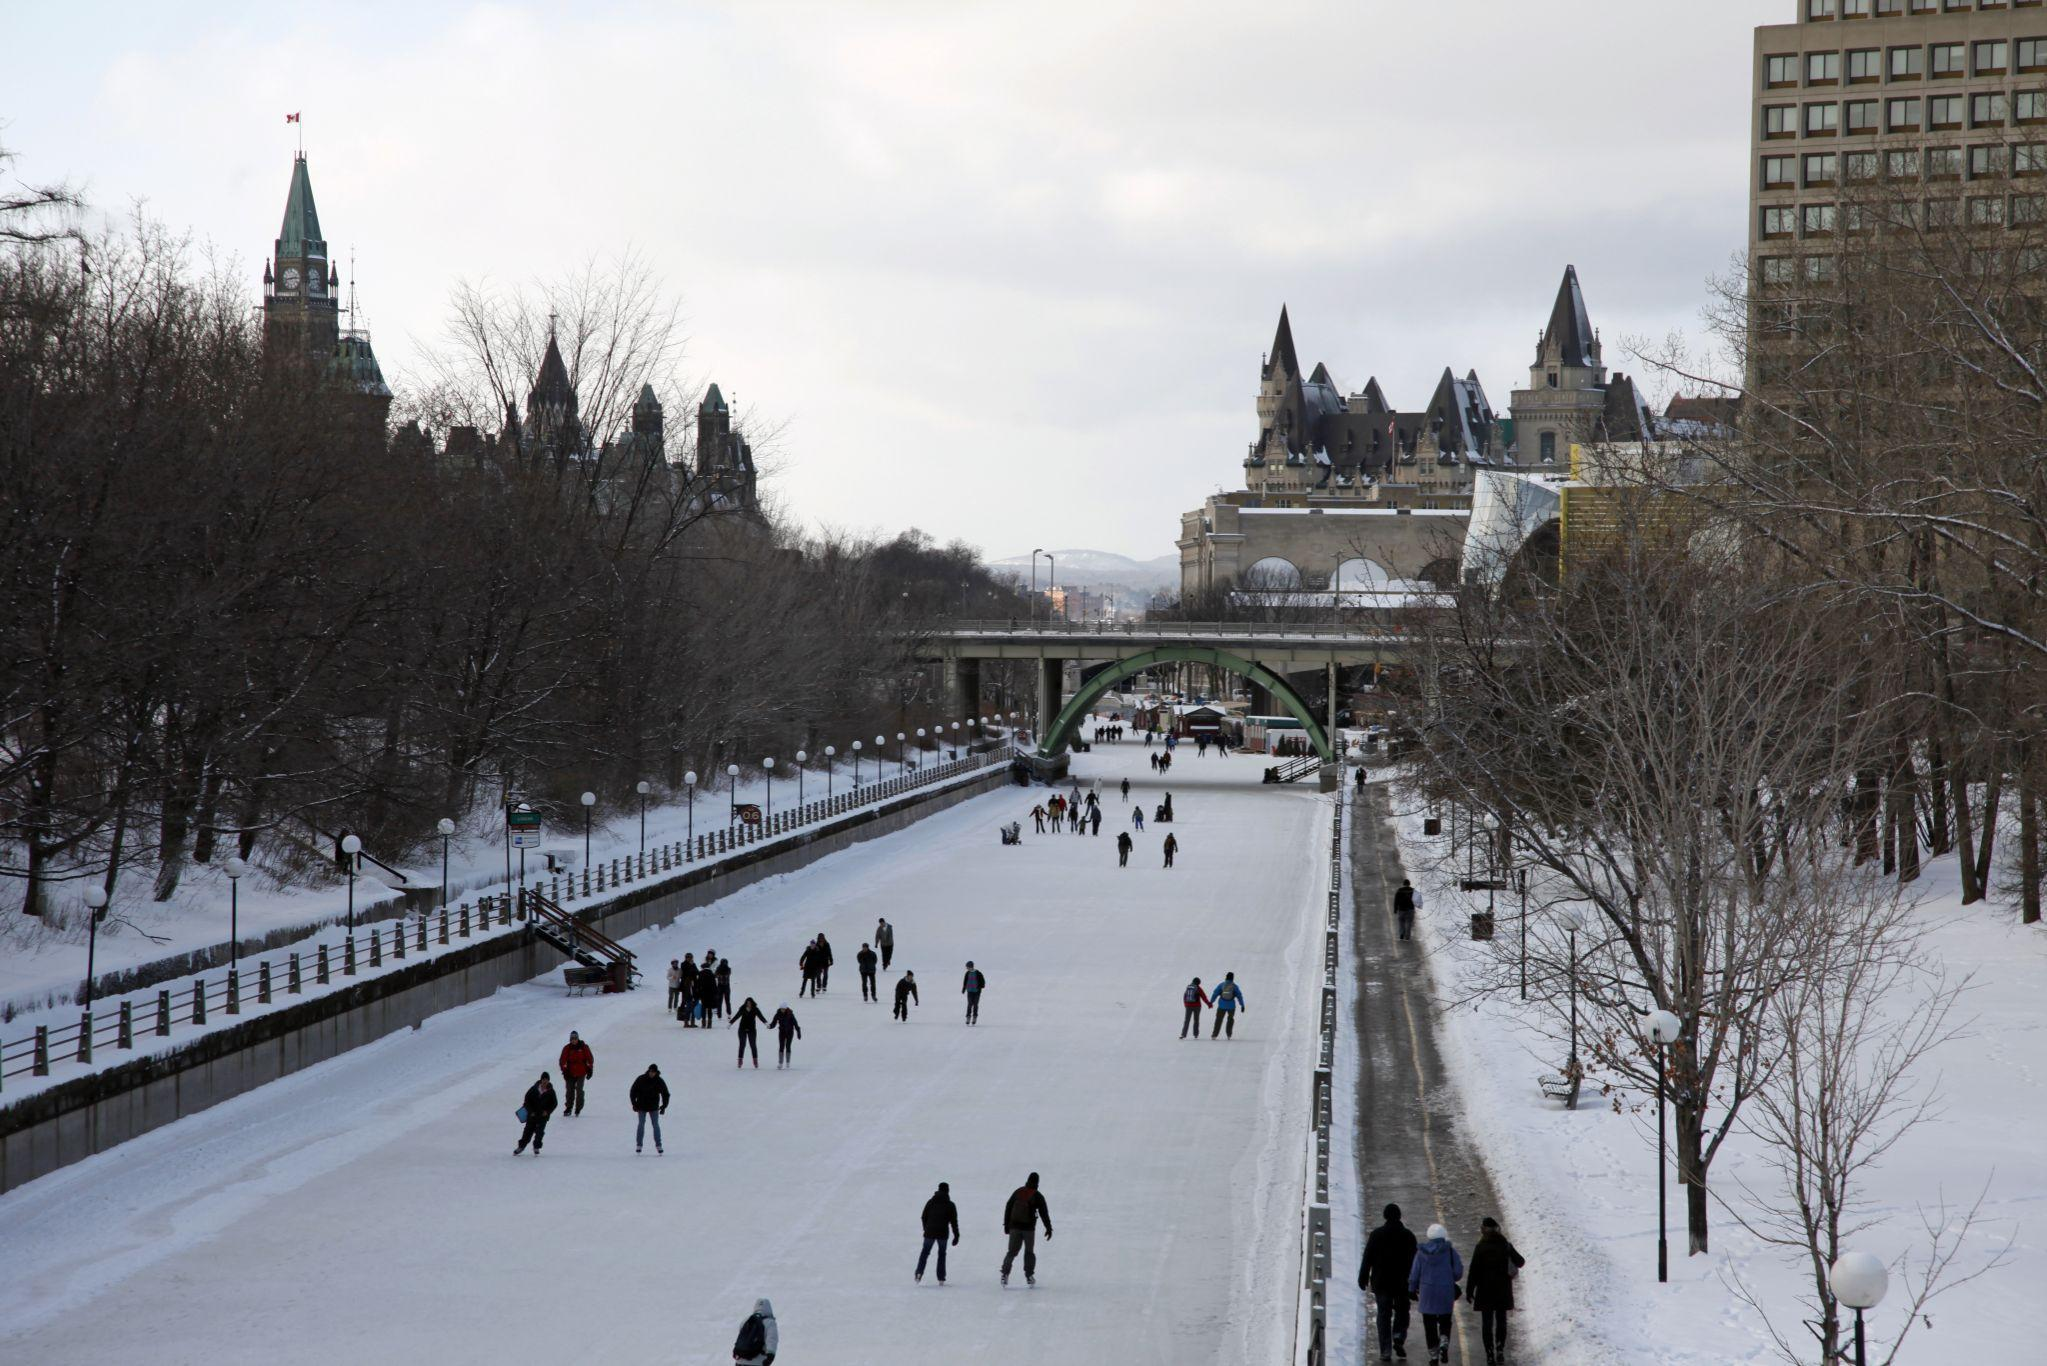 8 activities for your winter bucket list in the Capital